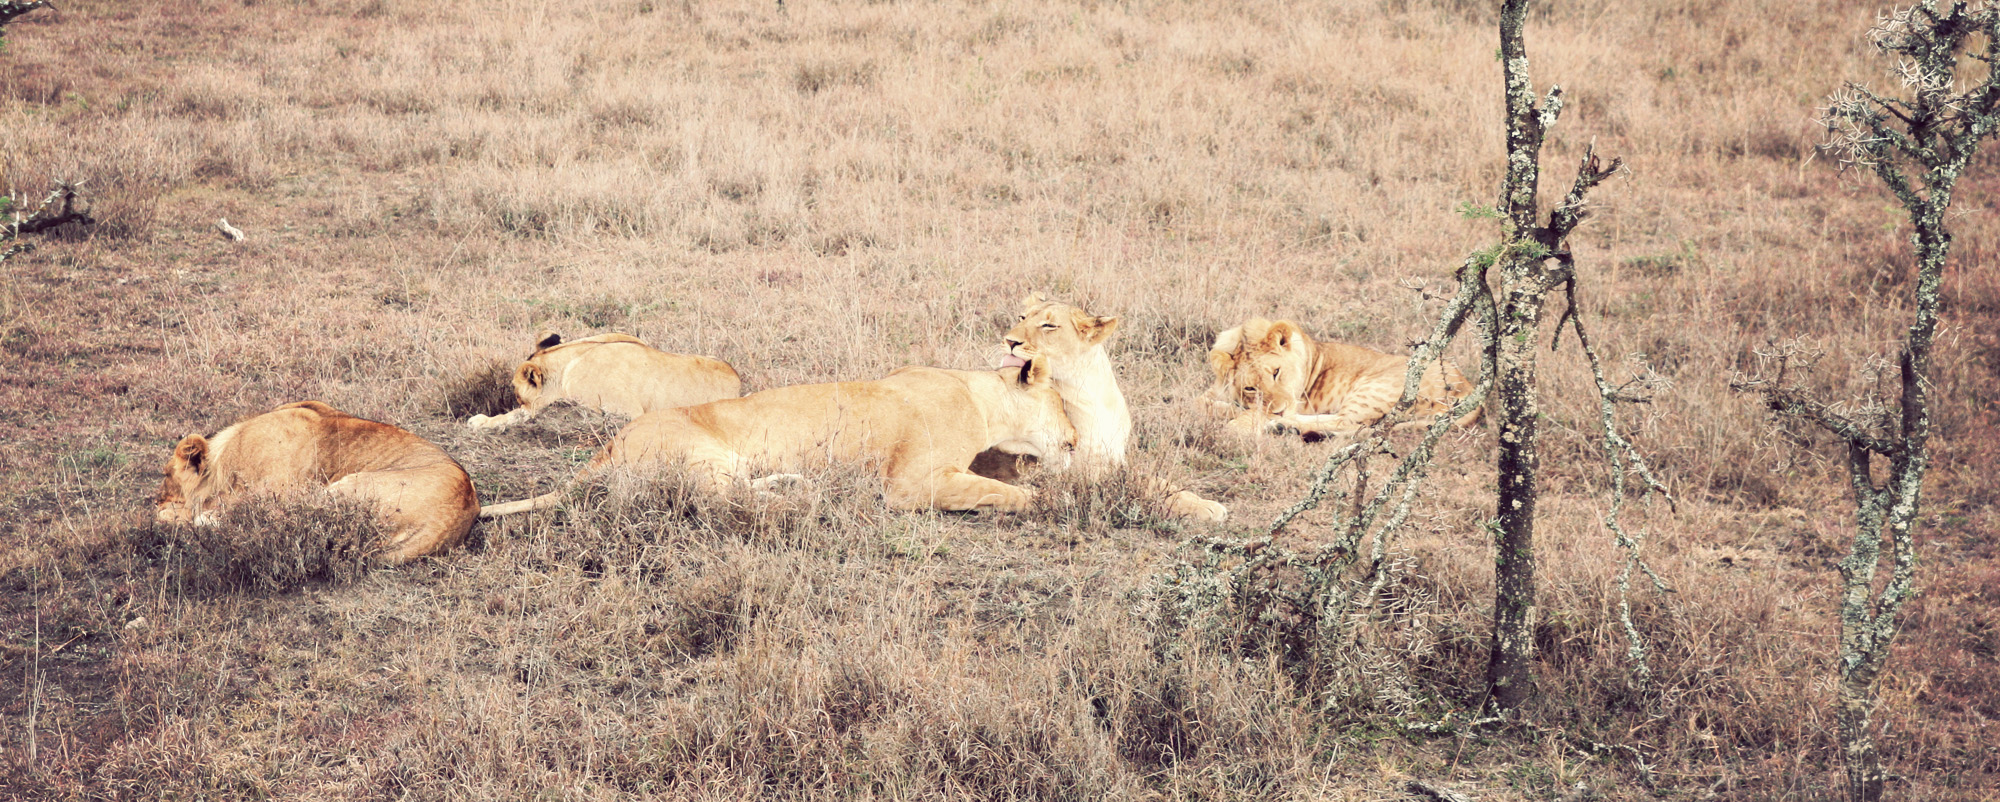 Day02_Sweetwater_Lions_02.jpg